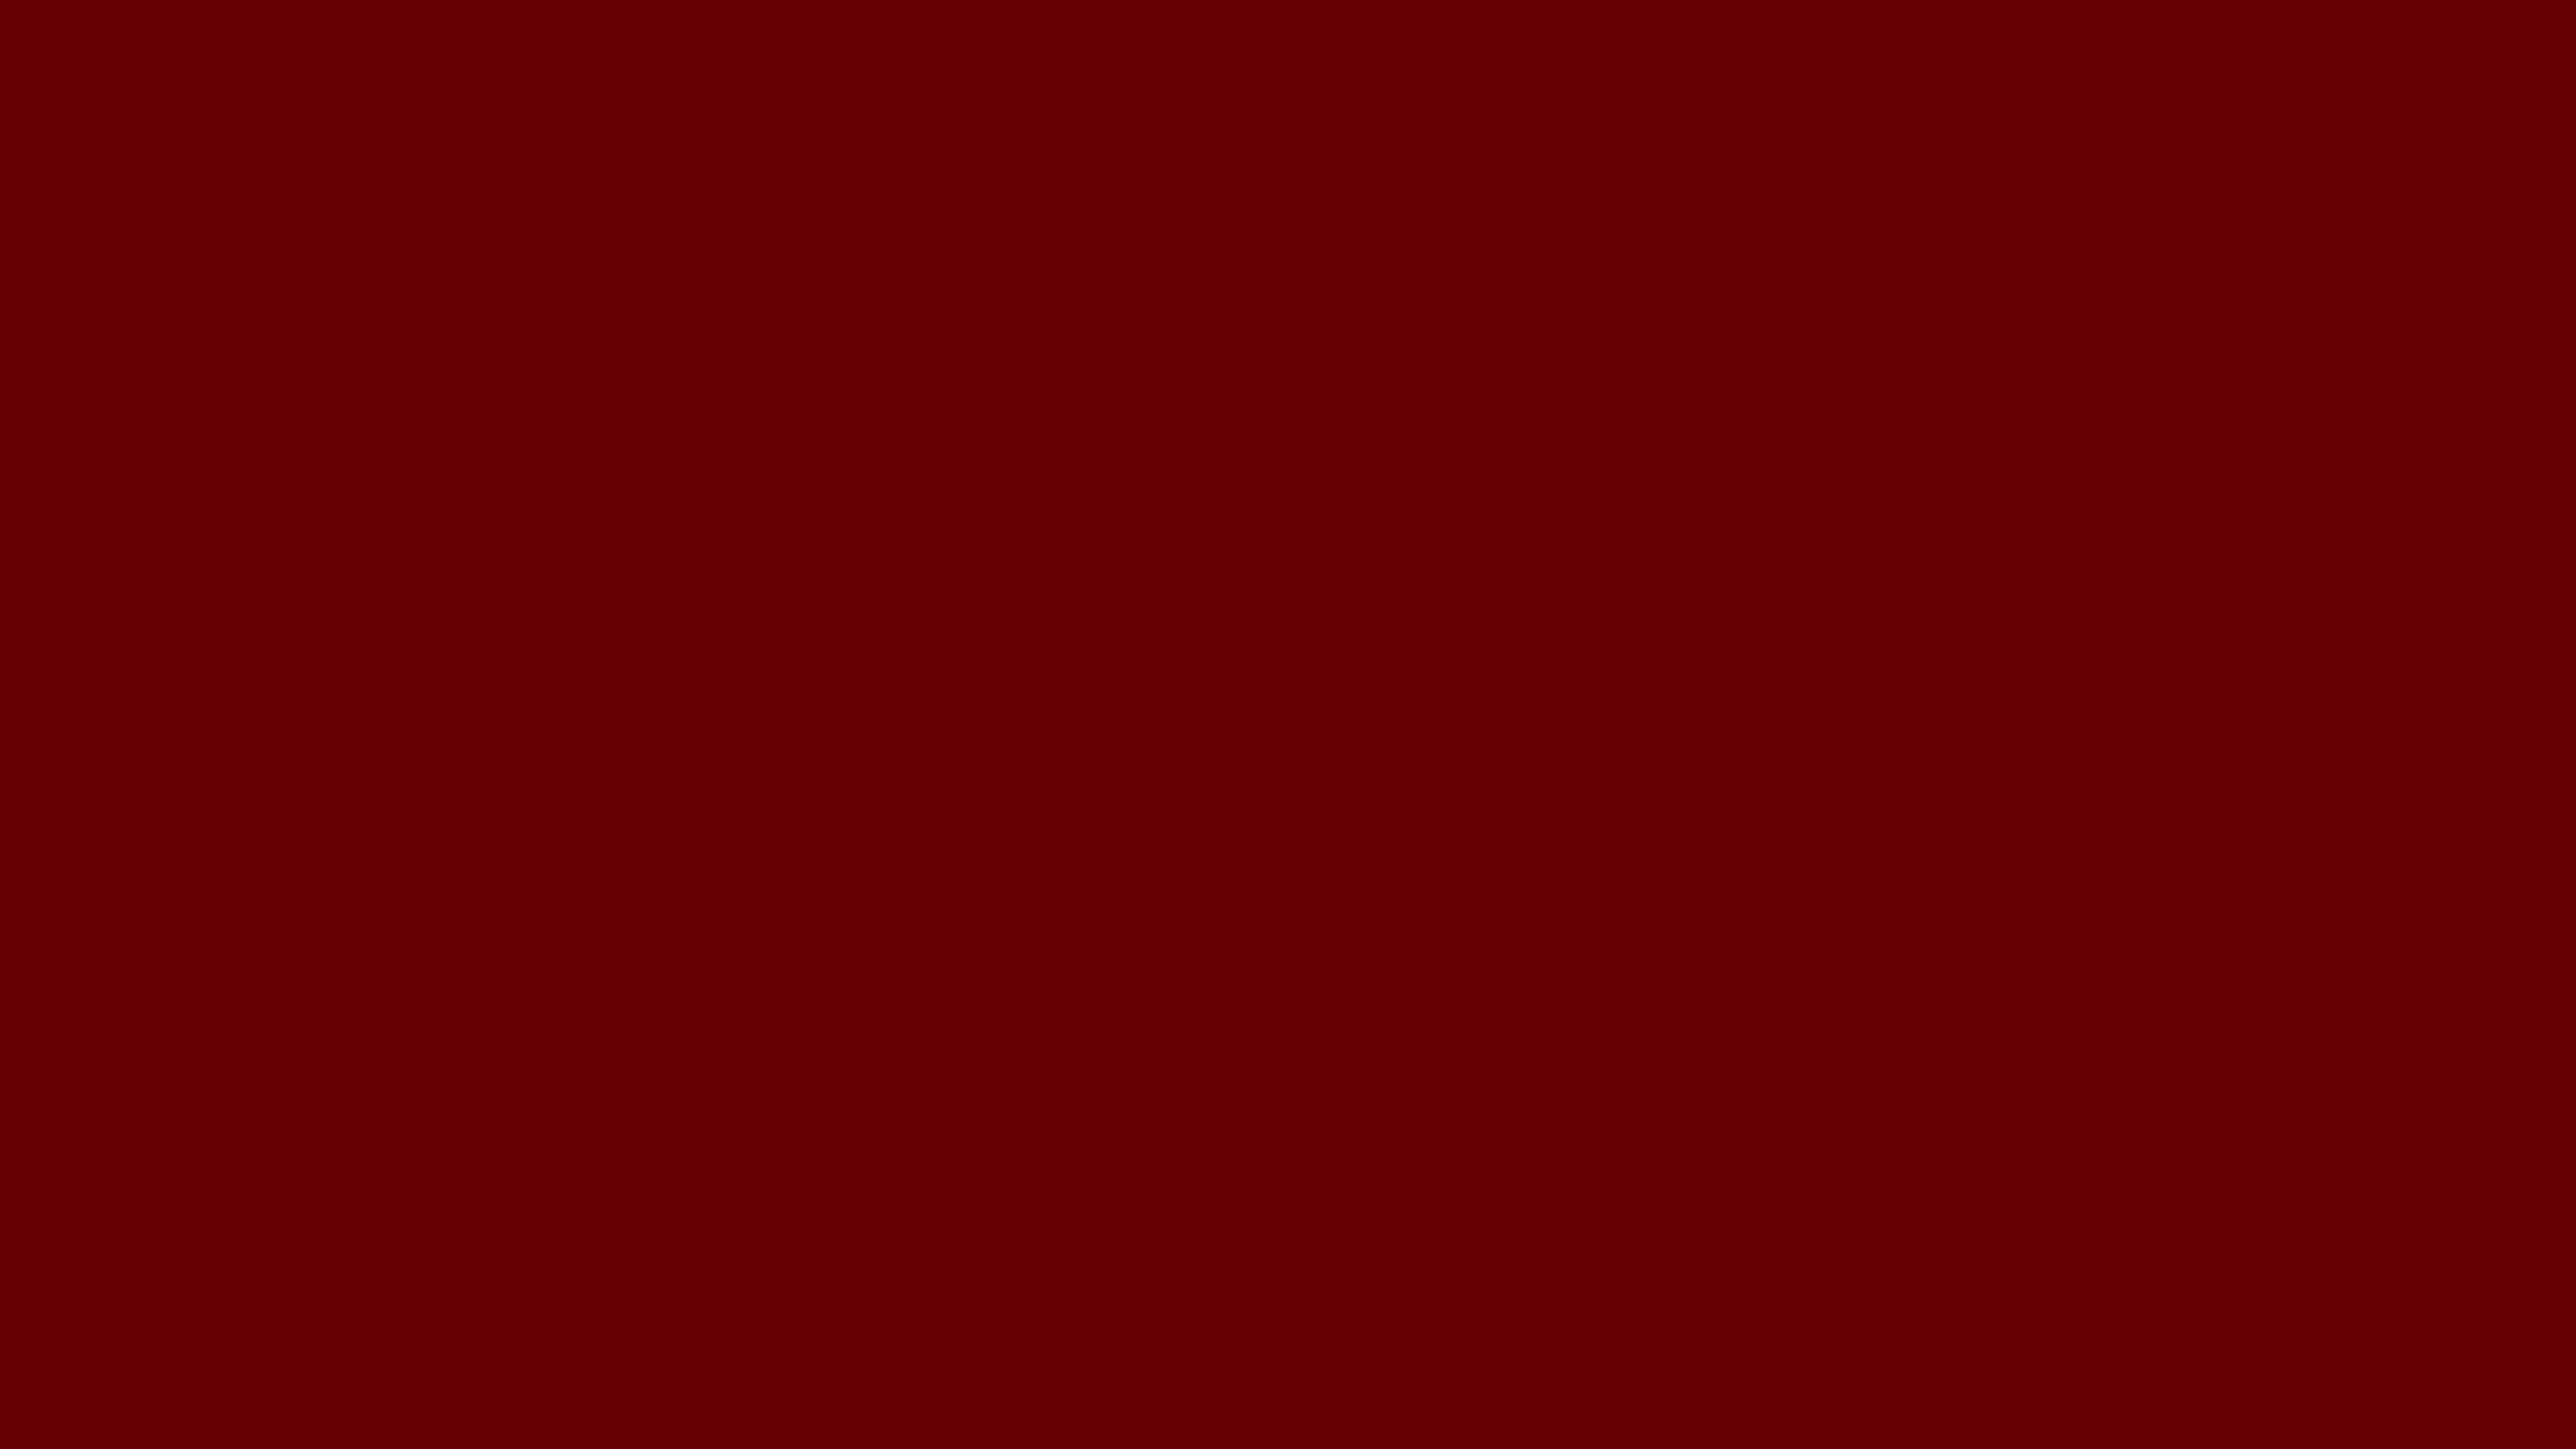 4096x2304 Rosewood Solid Color Background